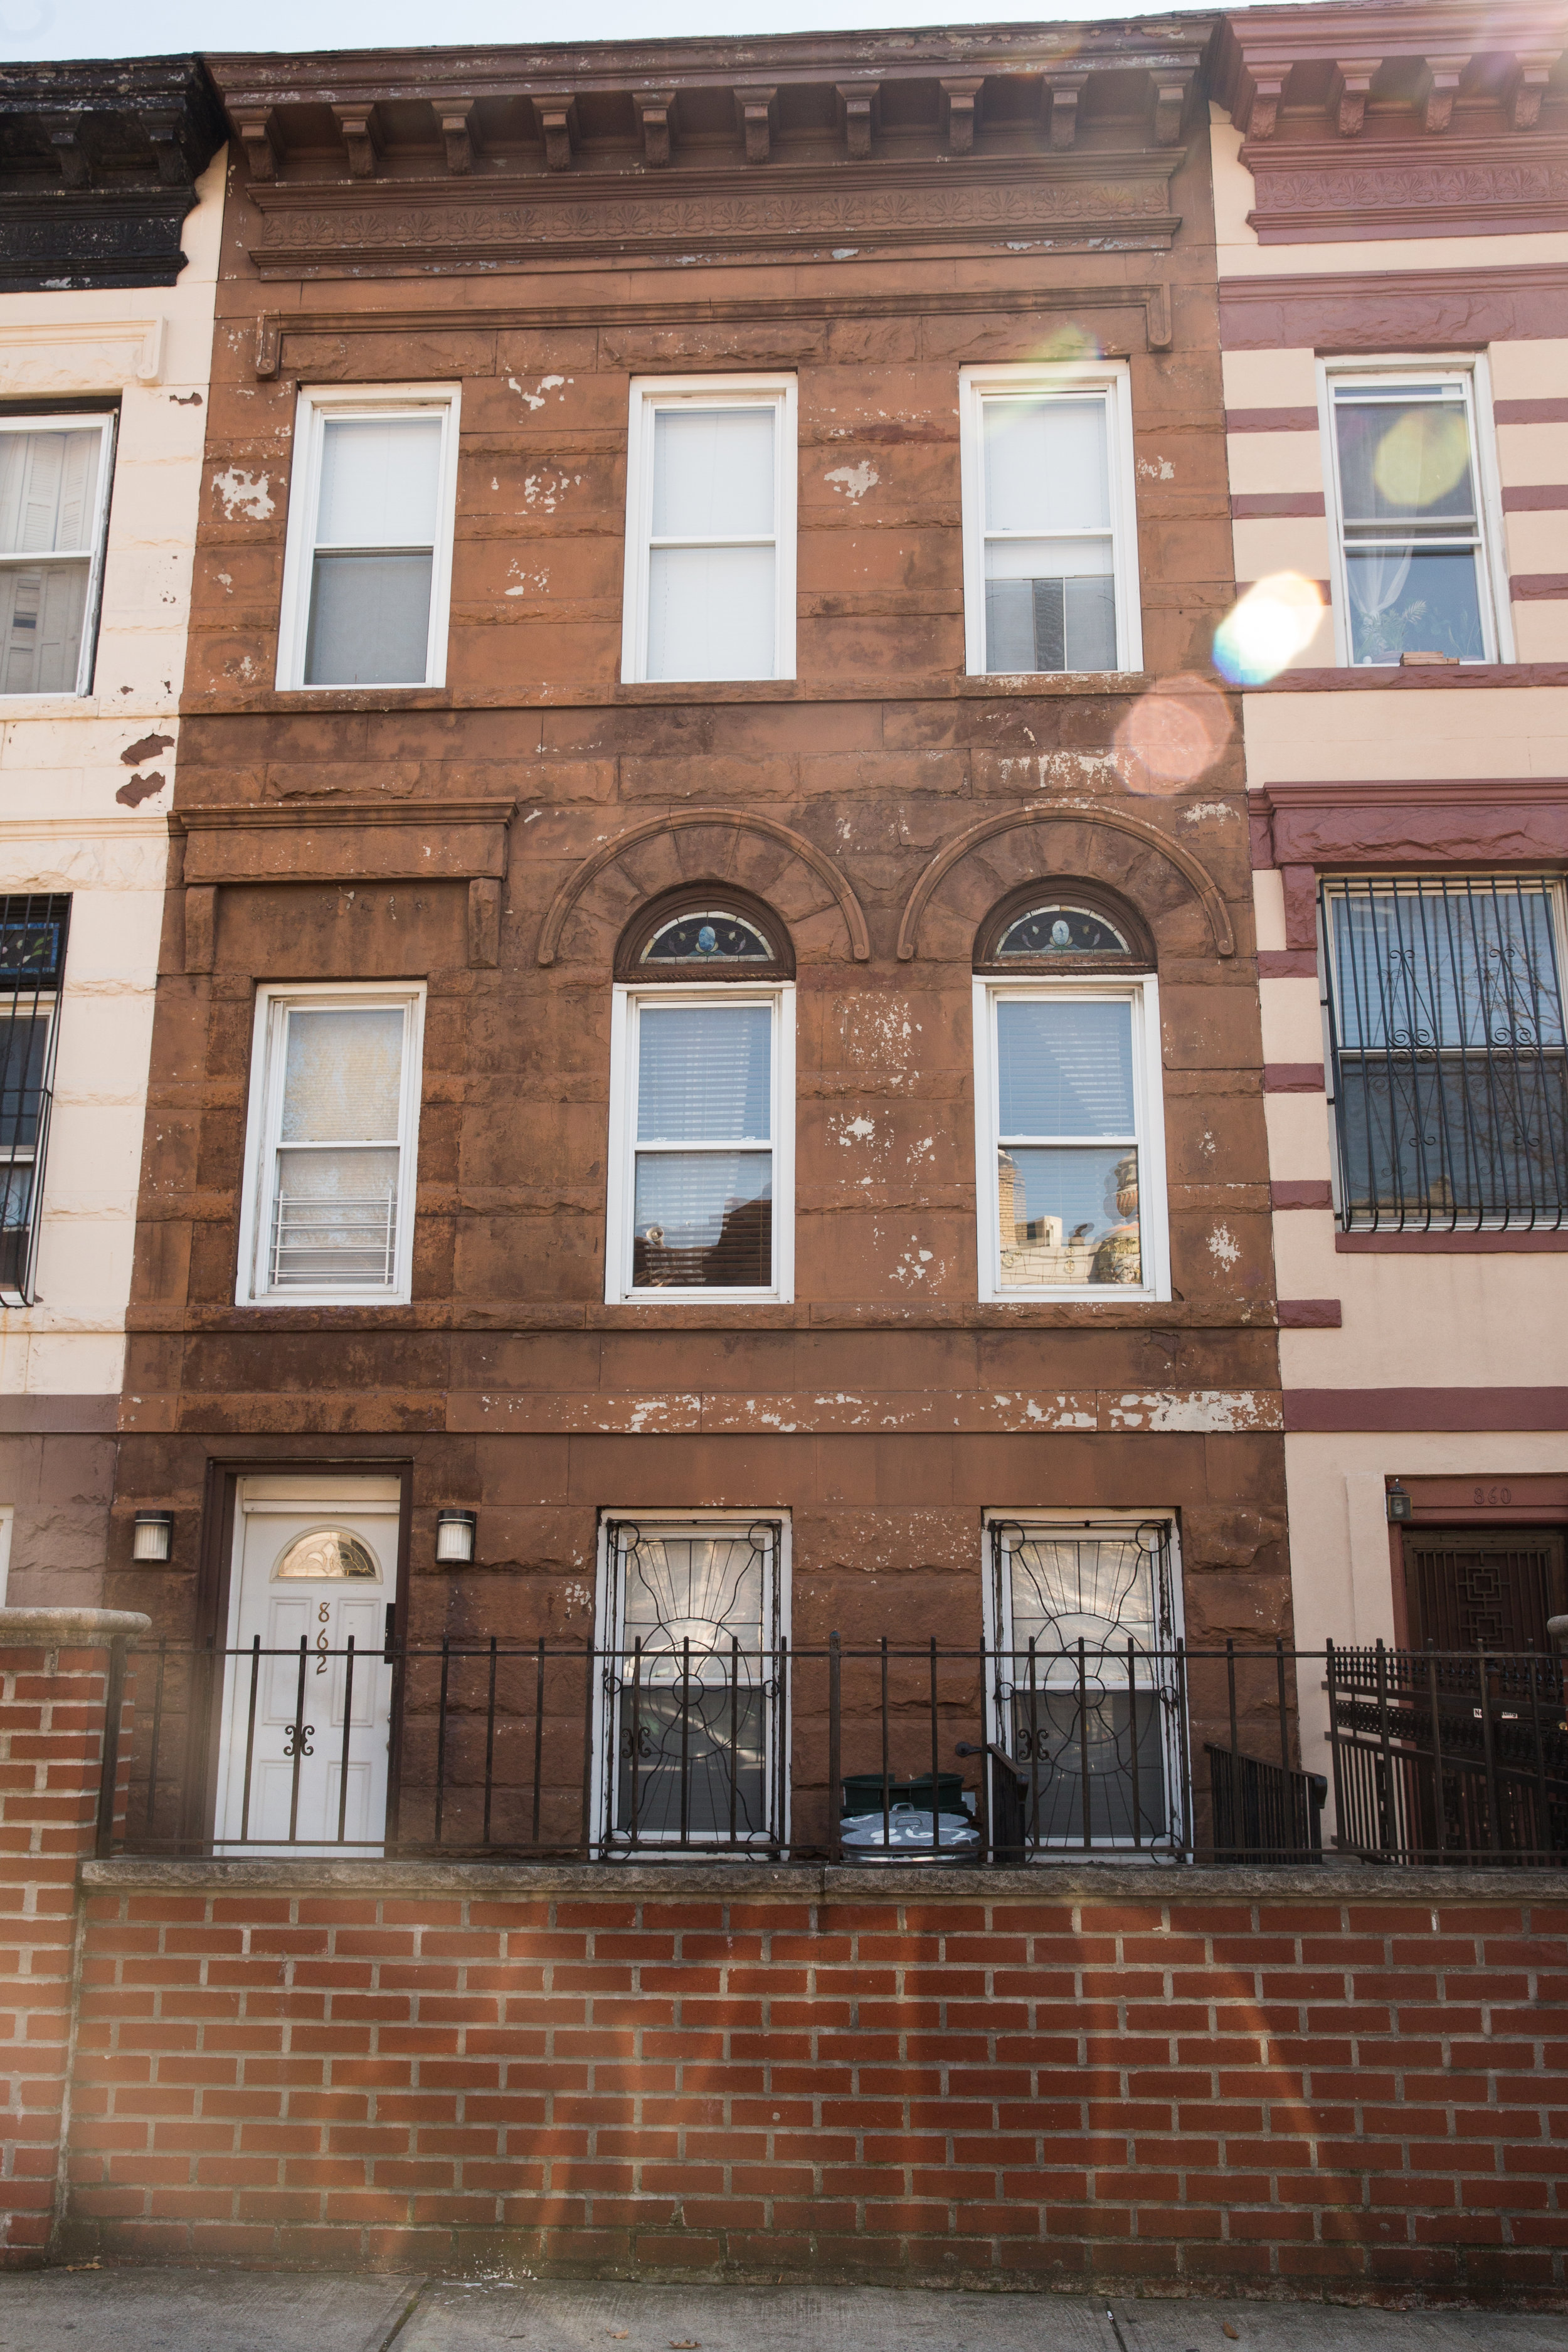 Can we convert this historic building into 3-unit apartment building?.